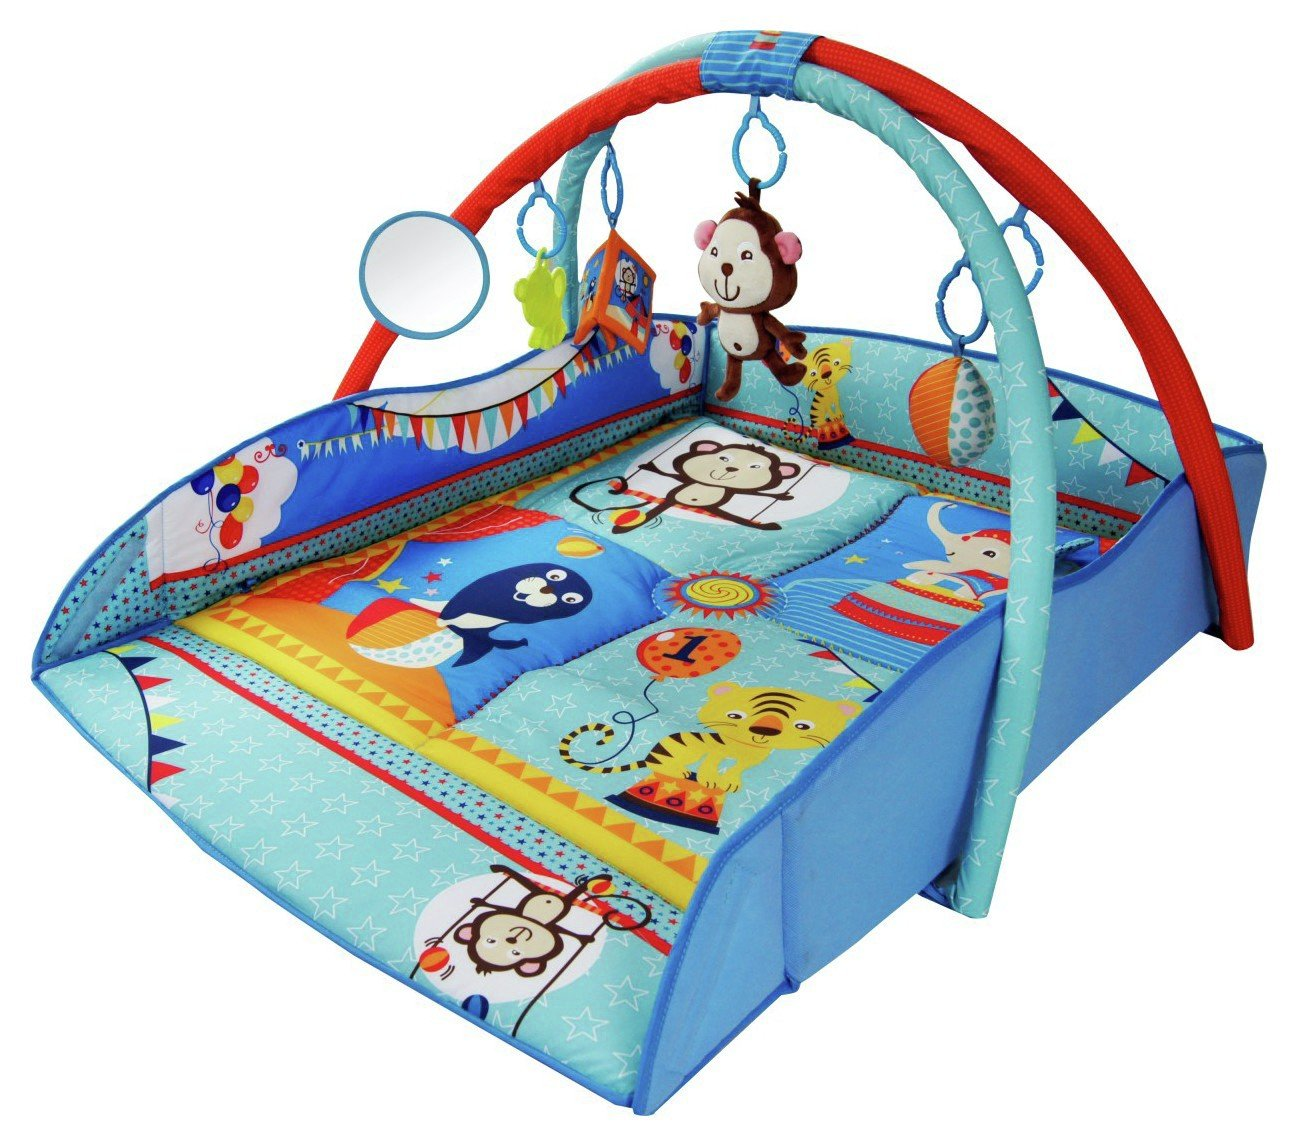 Image of BeBe Style 4 in 1 Animal World Playmat - Large.